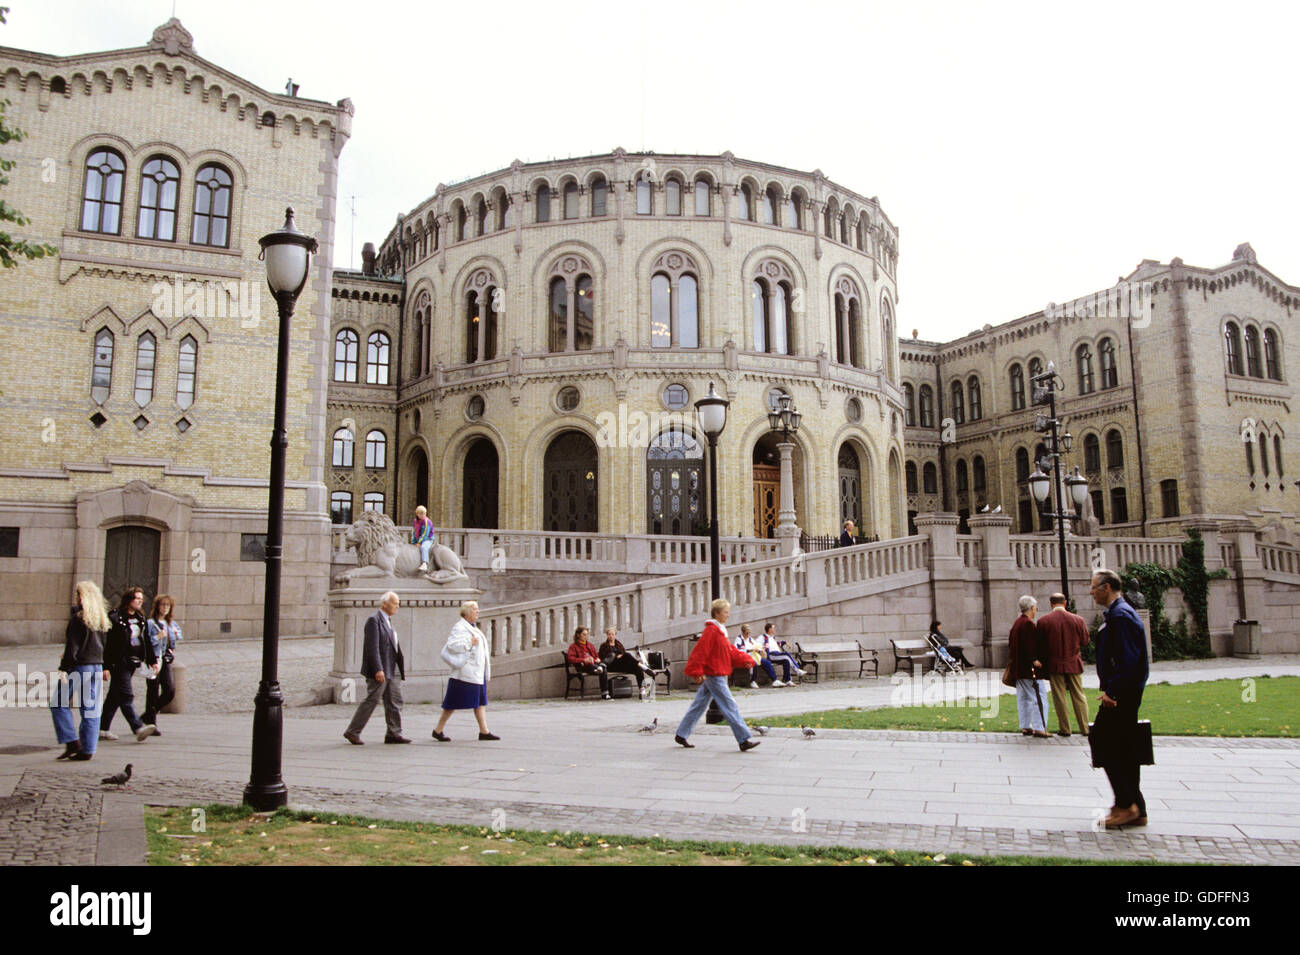 STORTINGET Parliament building in Oslo Norway - Stock Image